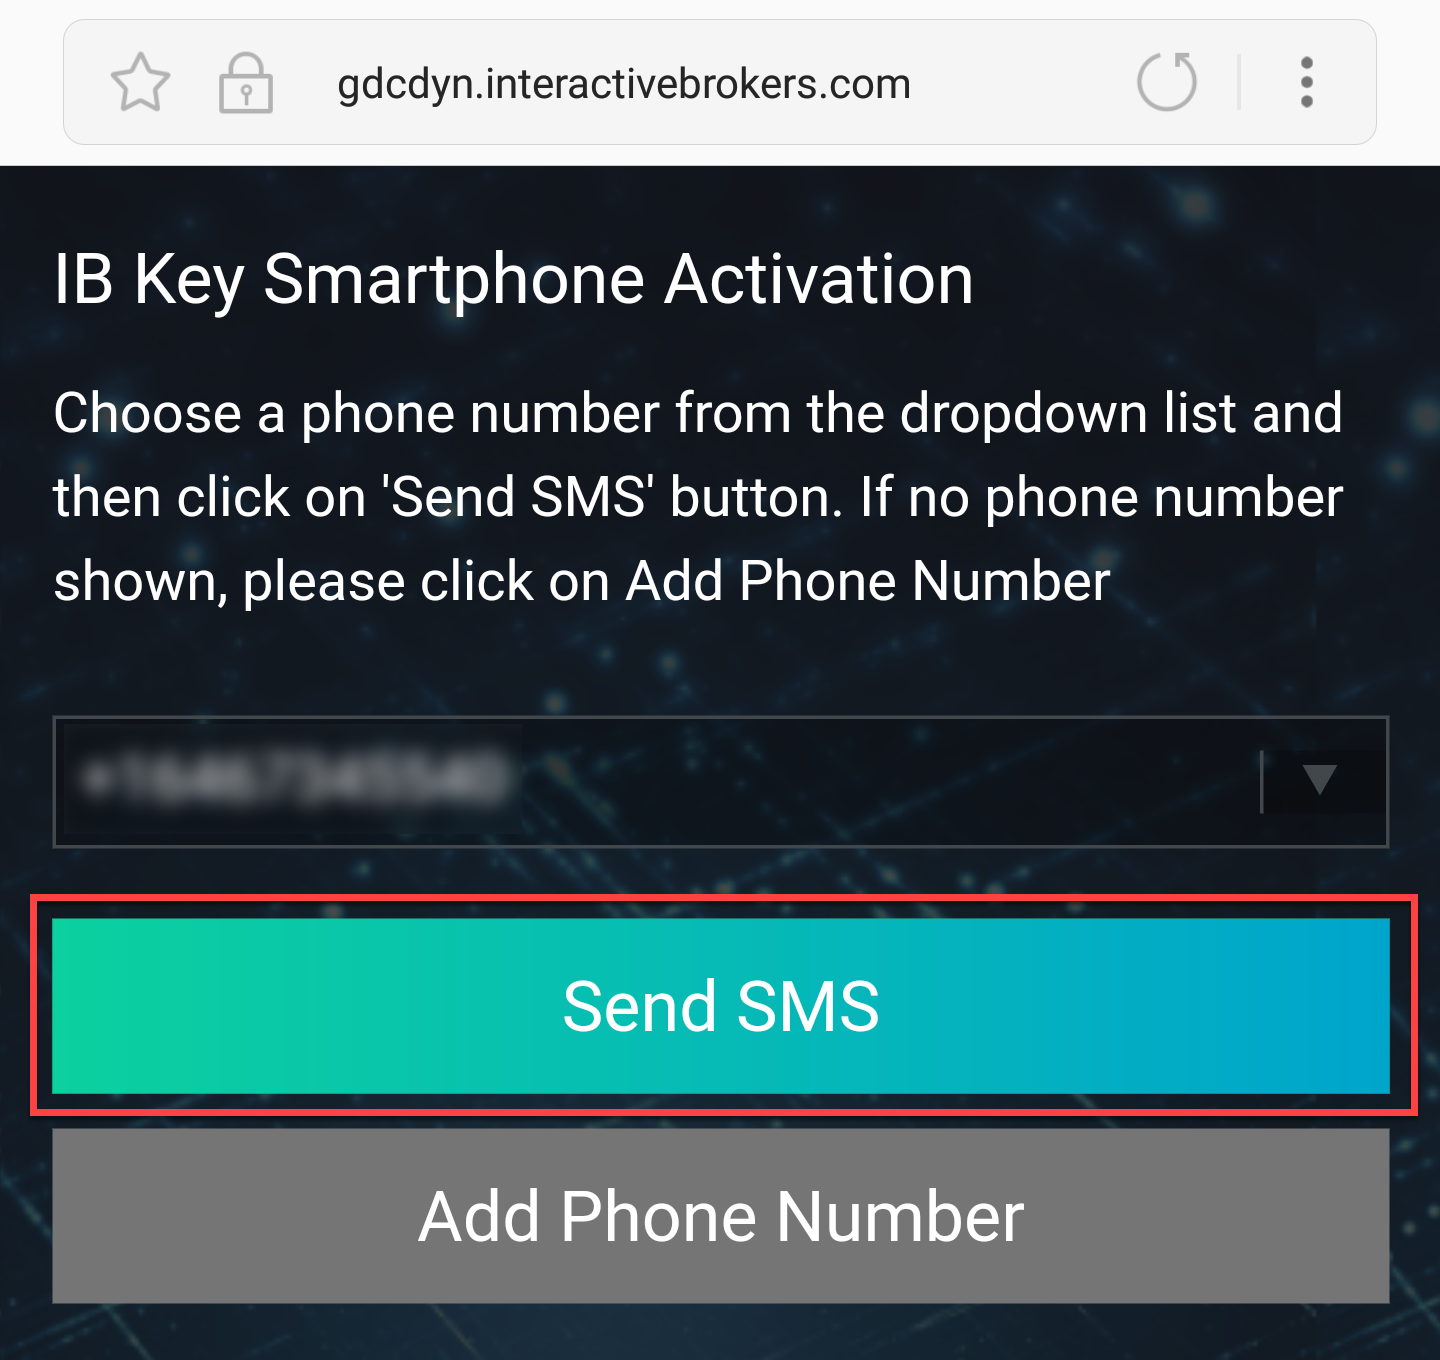 Specify Phone Number and tap Send SMS